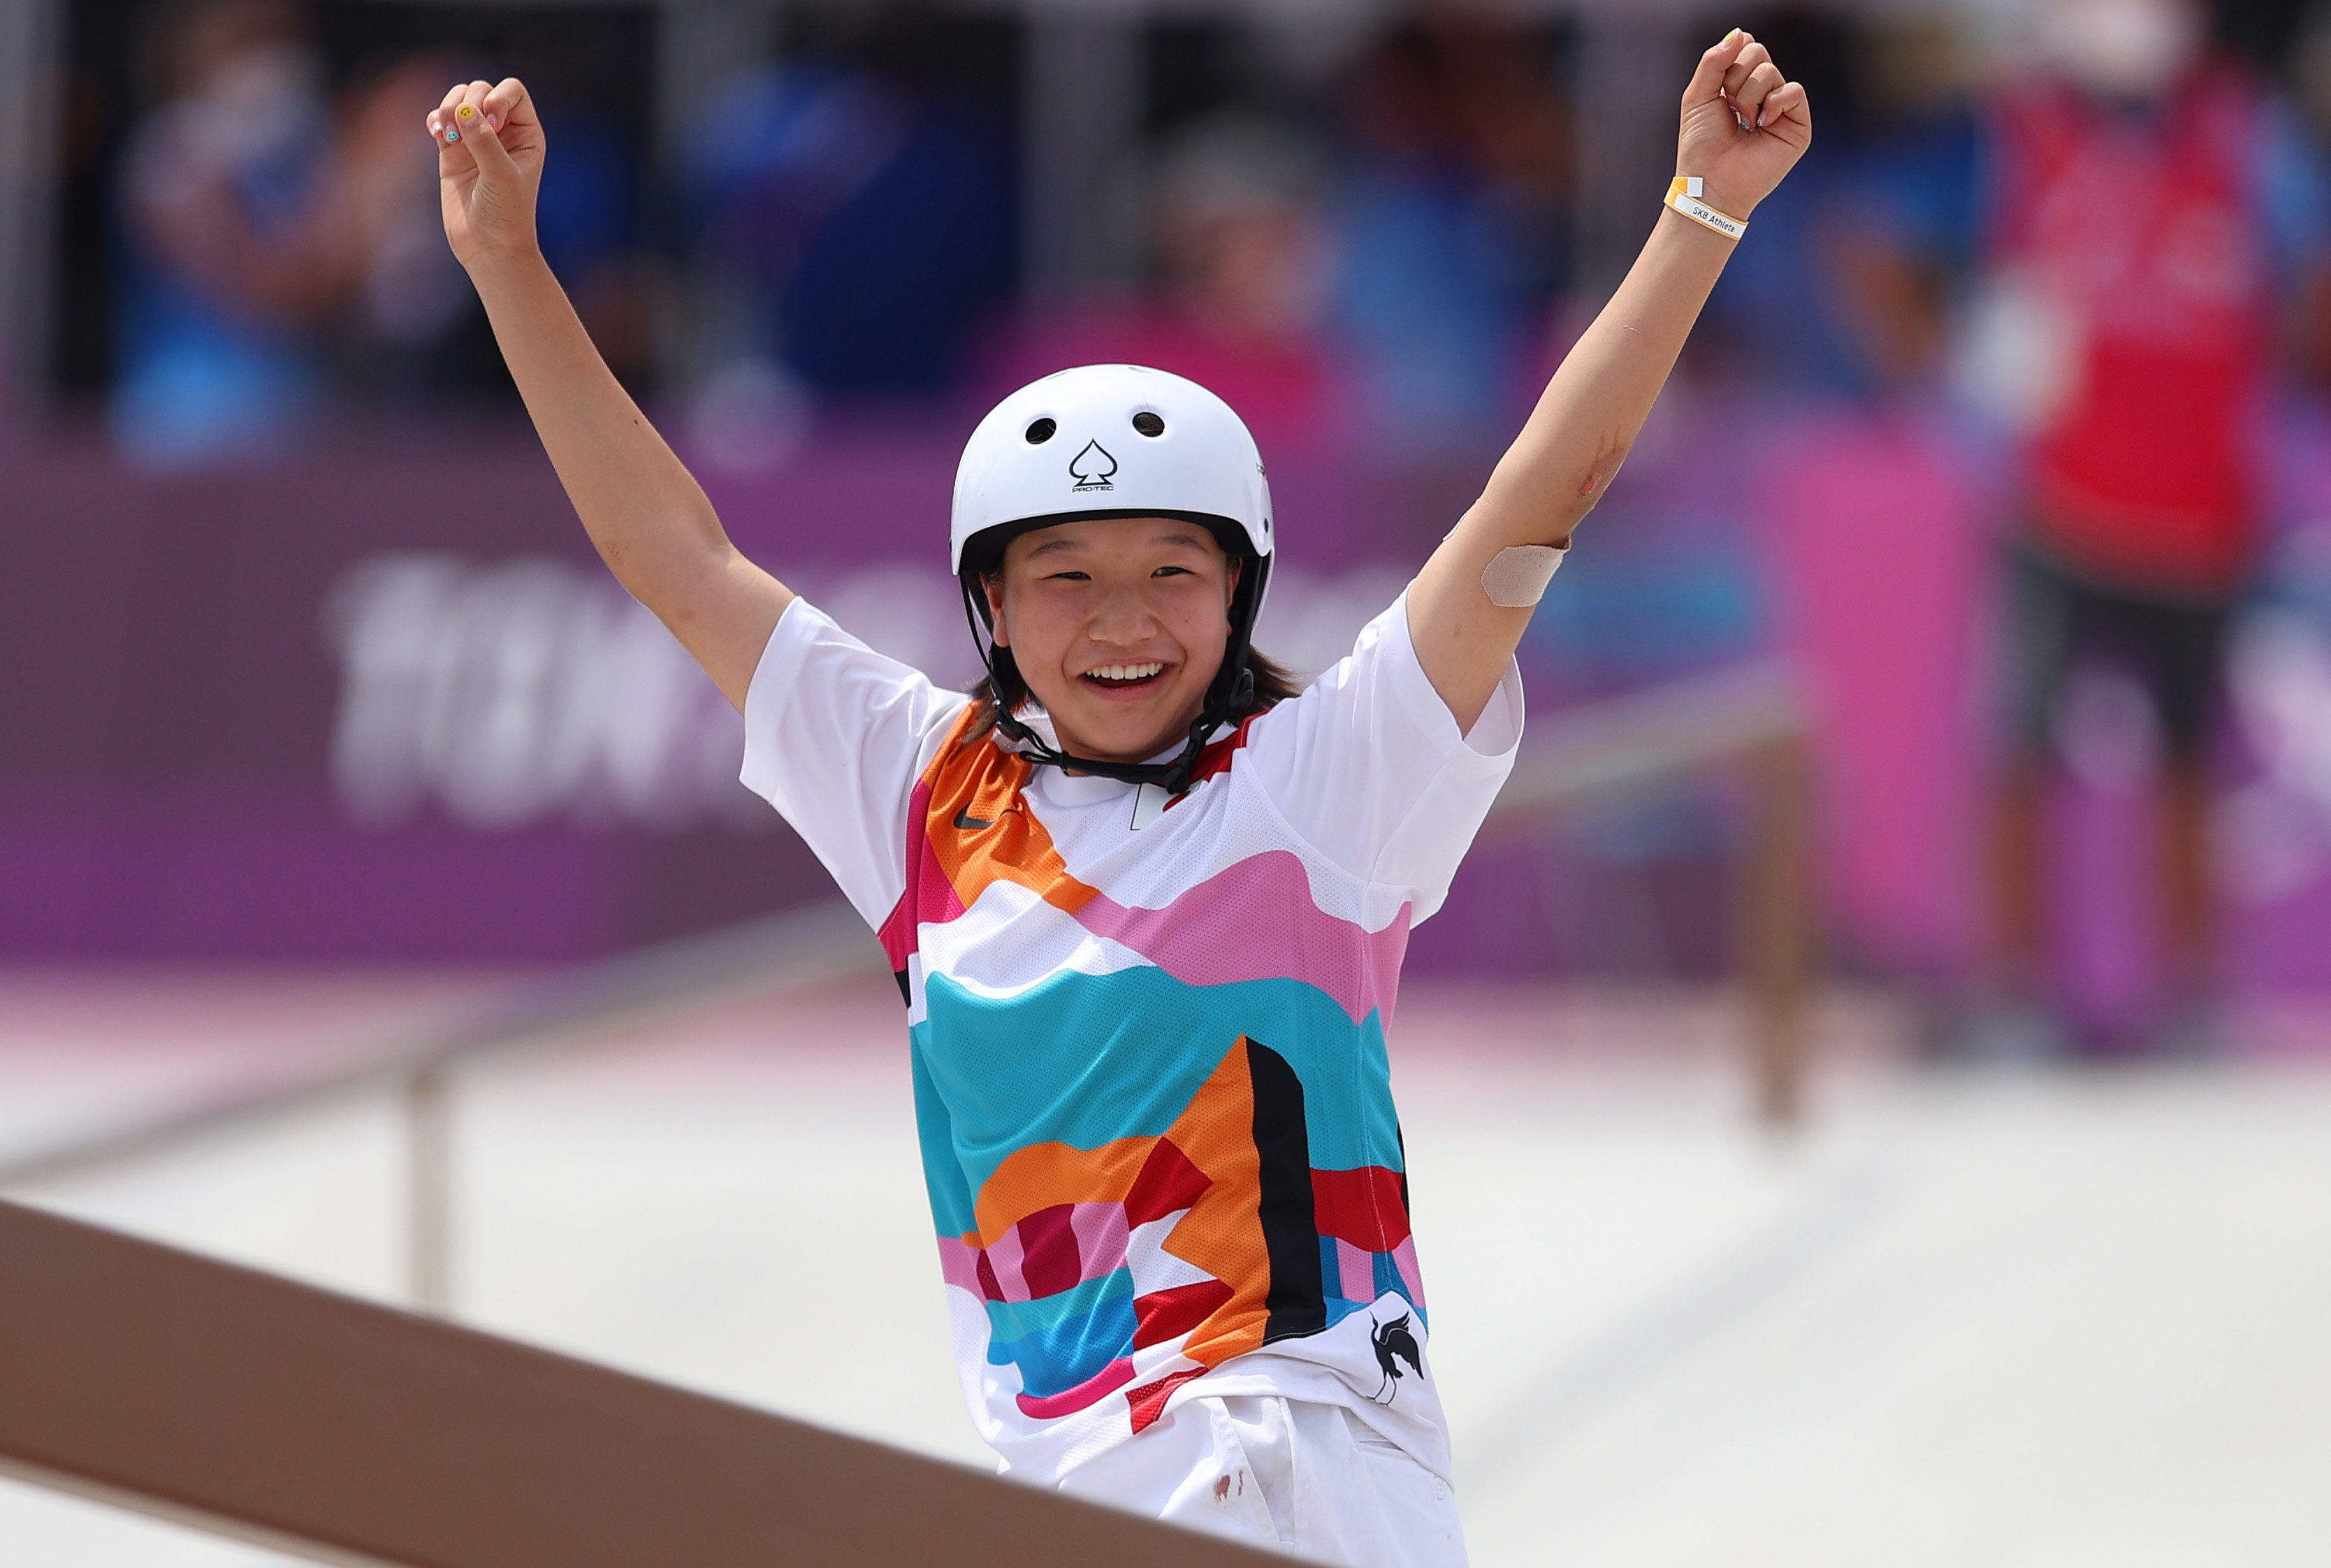 13-year-old wins skateboarding gold for Japan